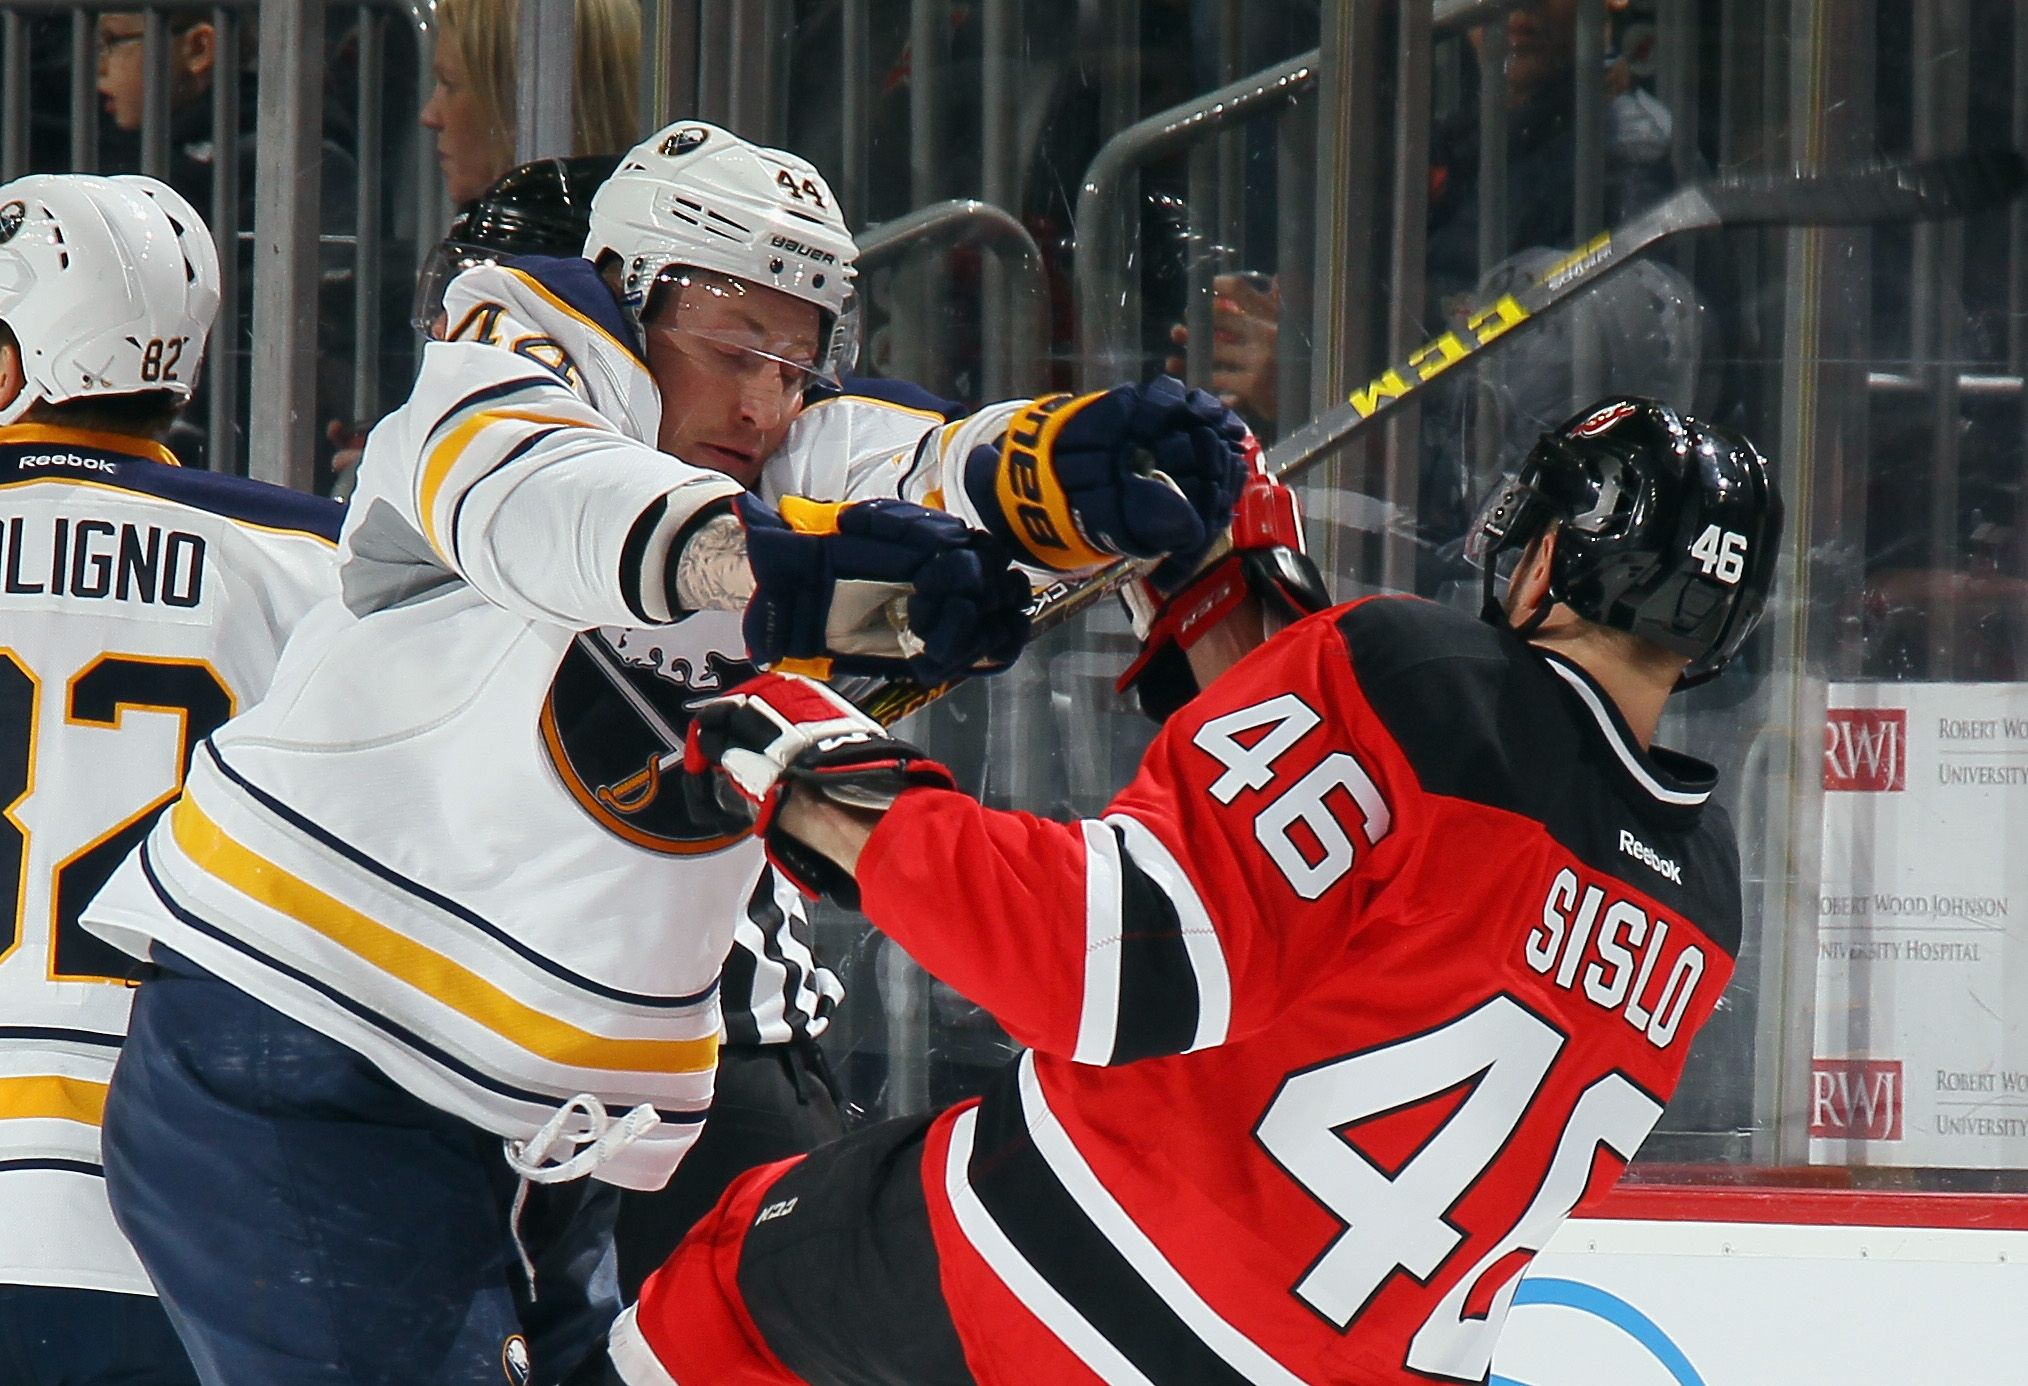 Nicolas Deslauriers skated with his teammates Thursday for the first time since October. (Getty Images)